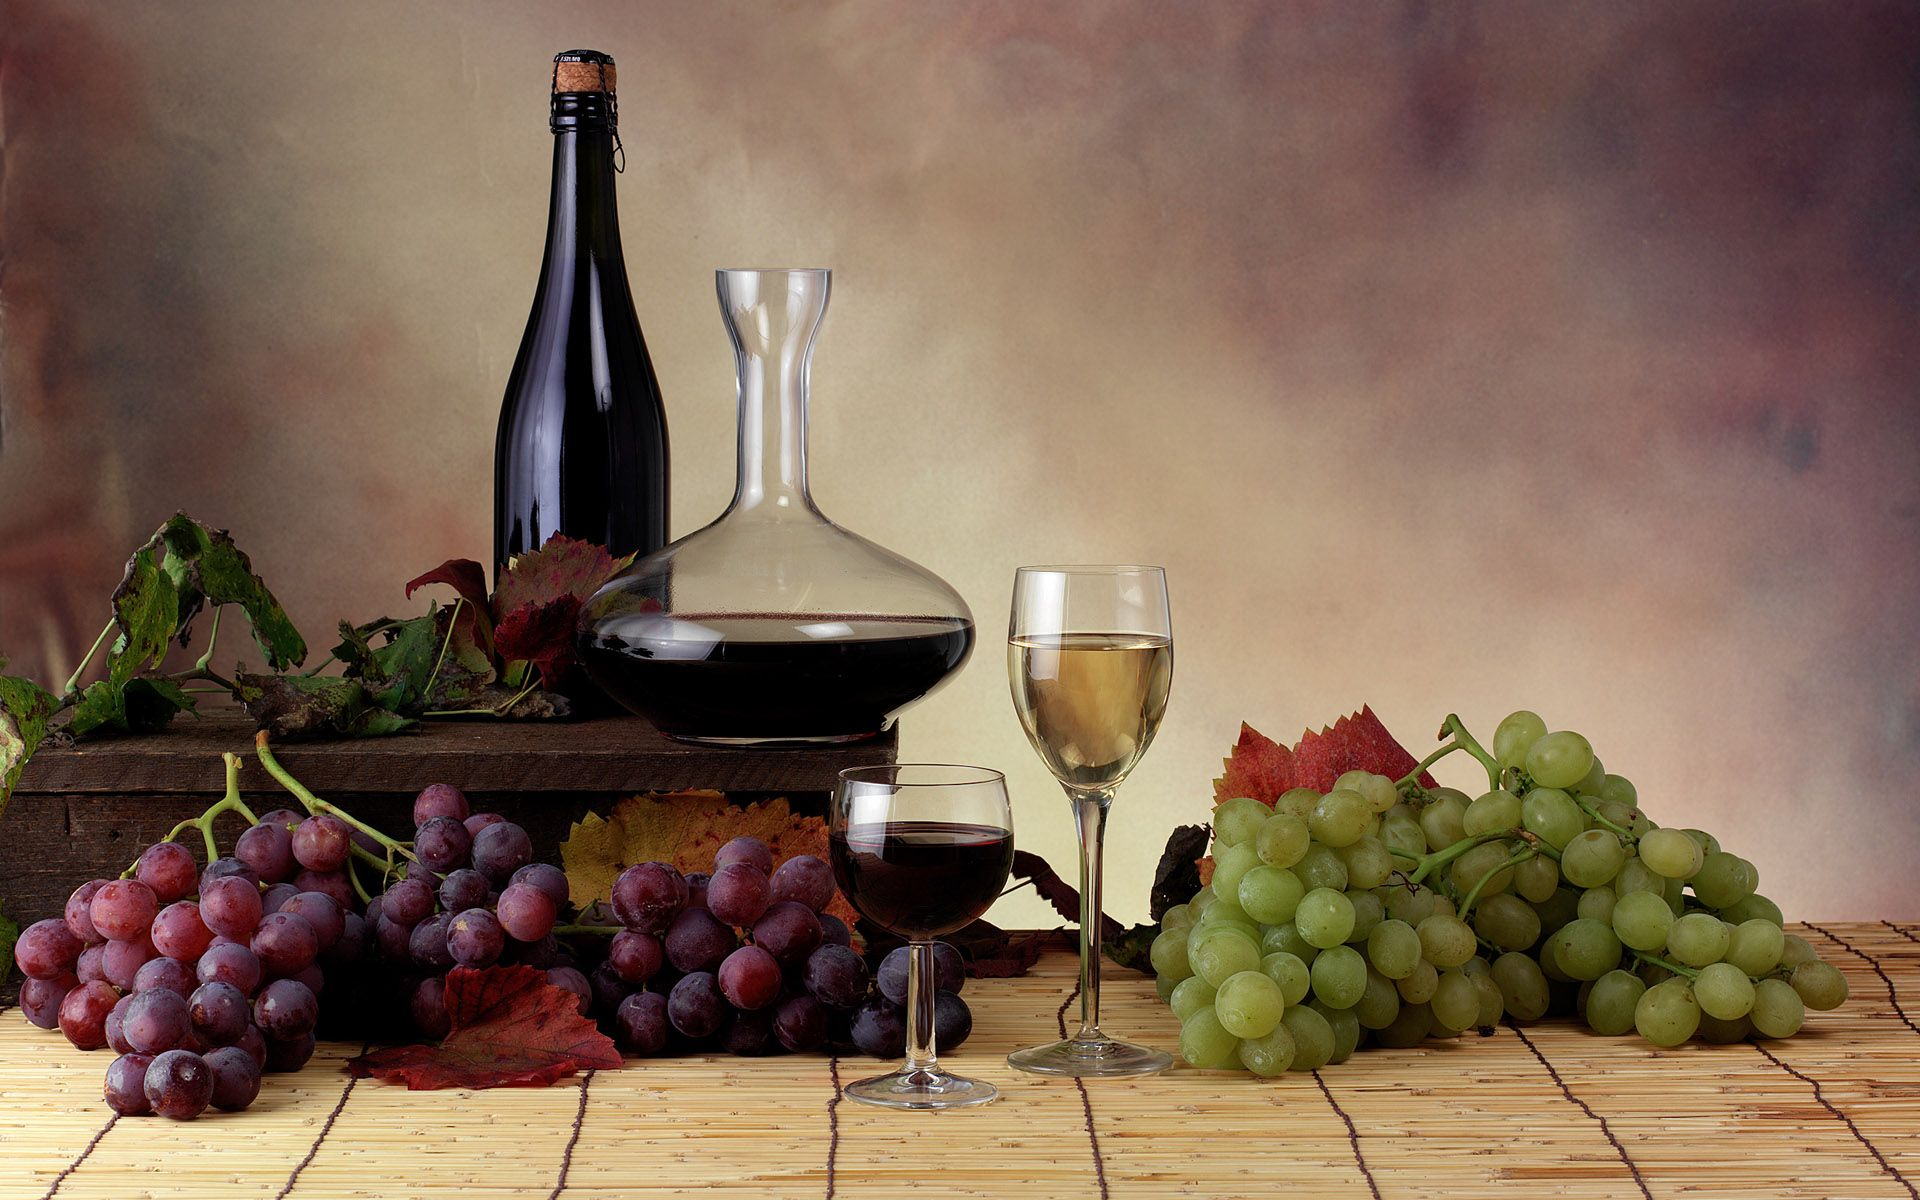 food, grapes, wine Wallpaper